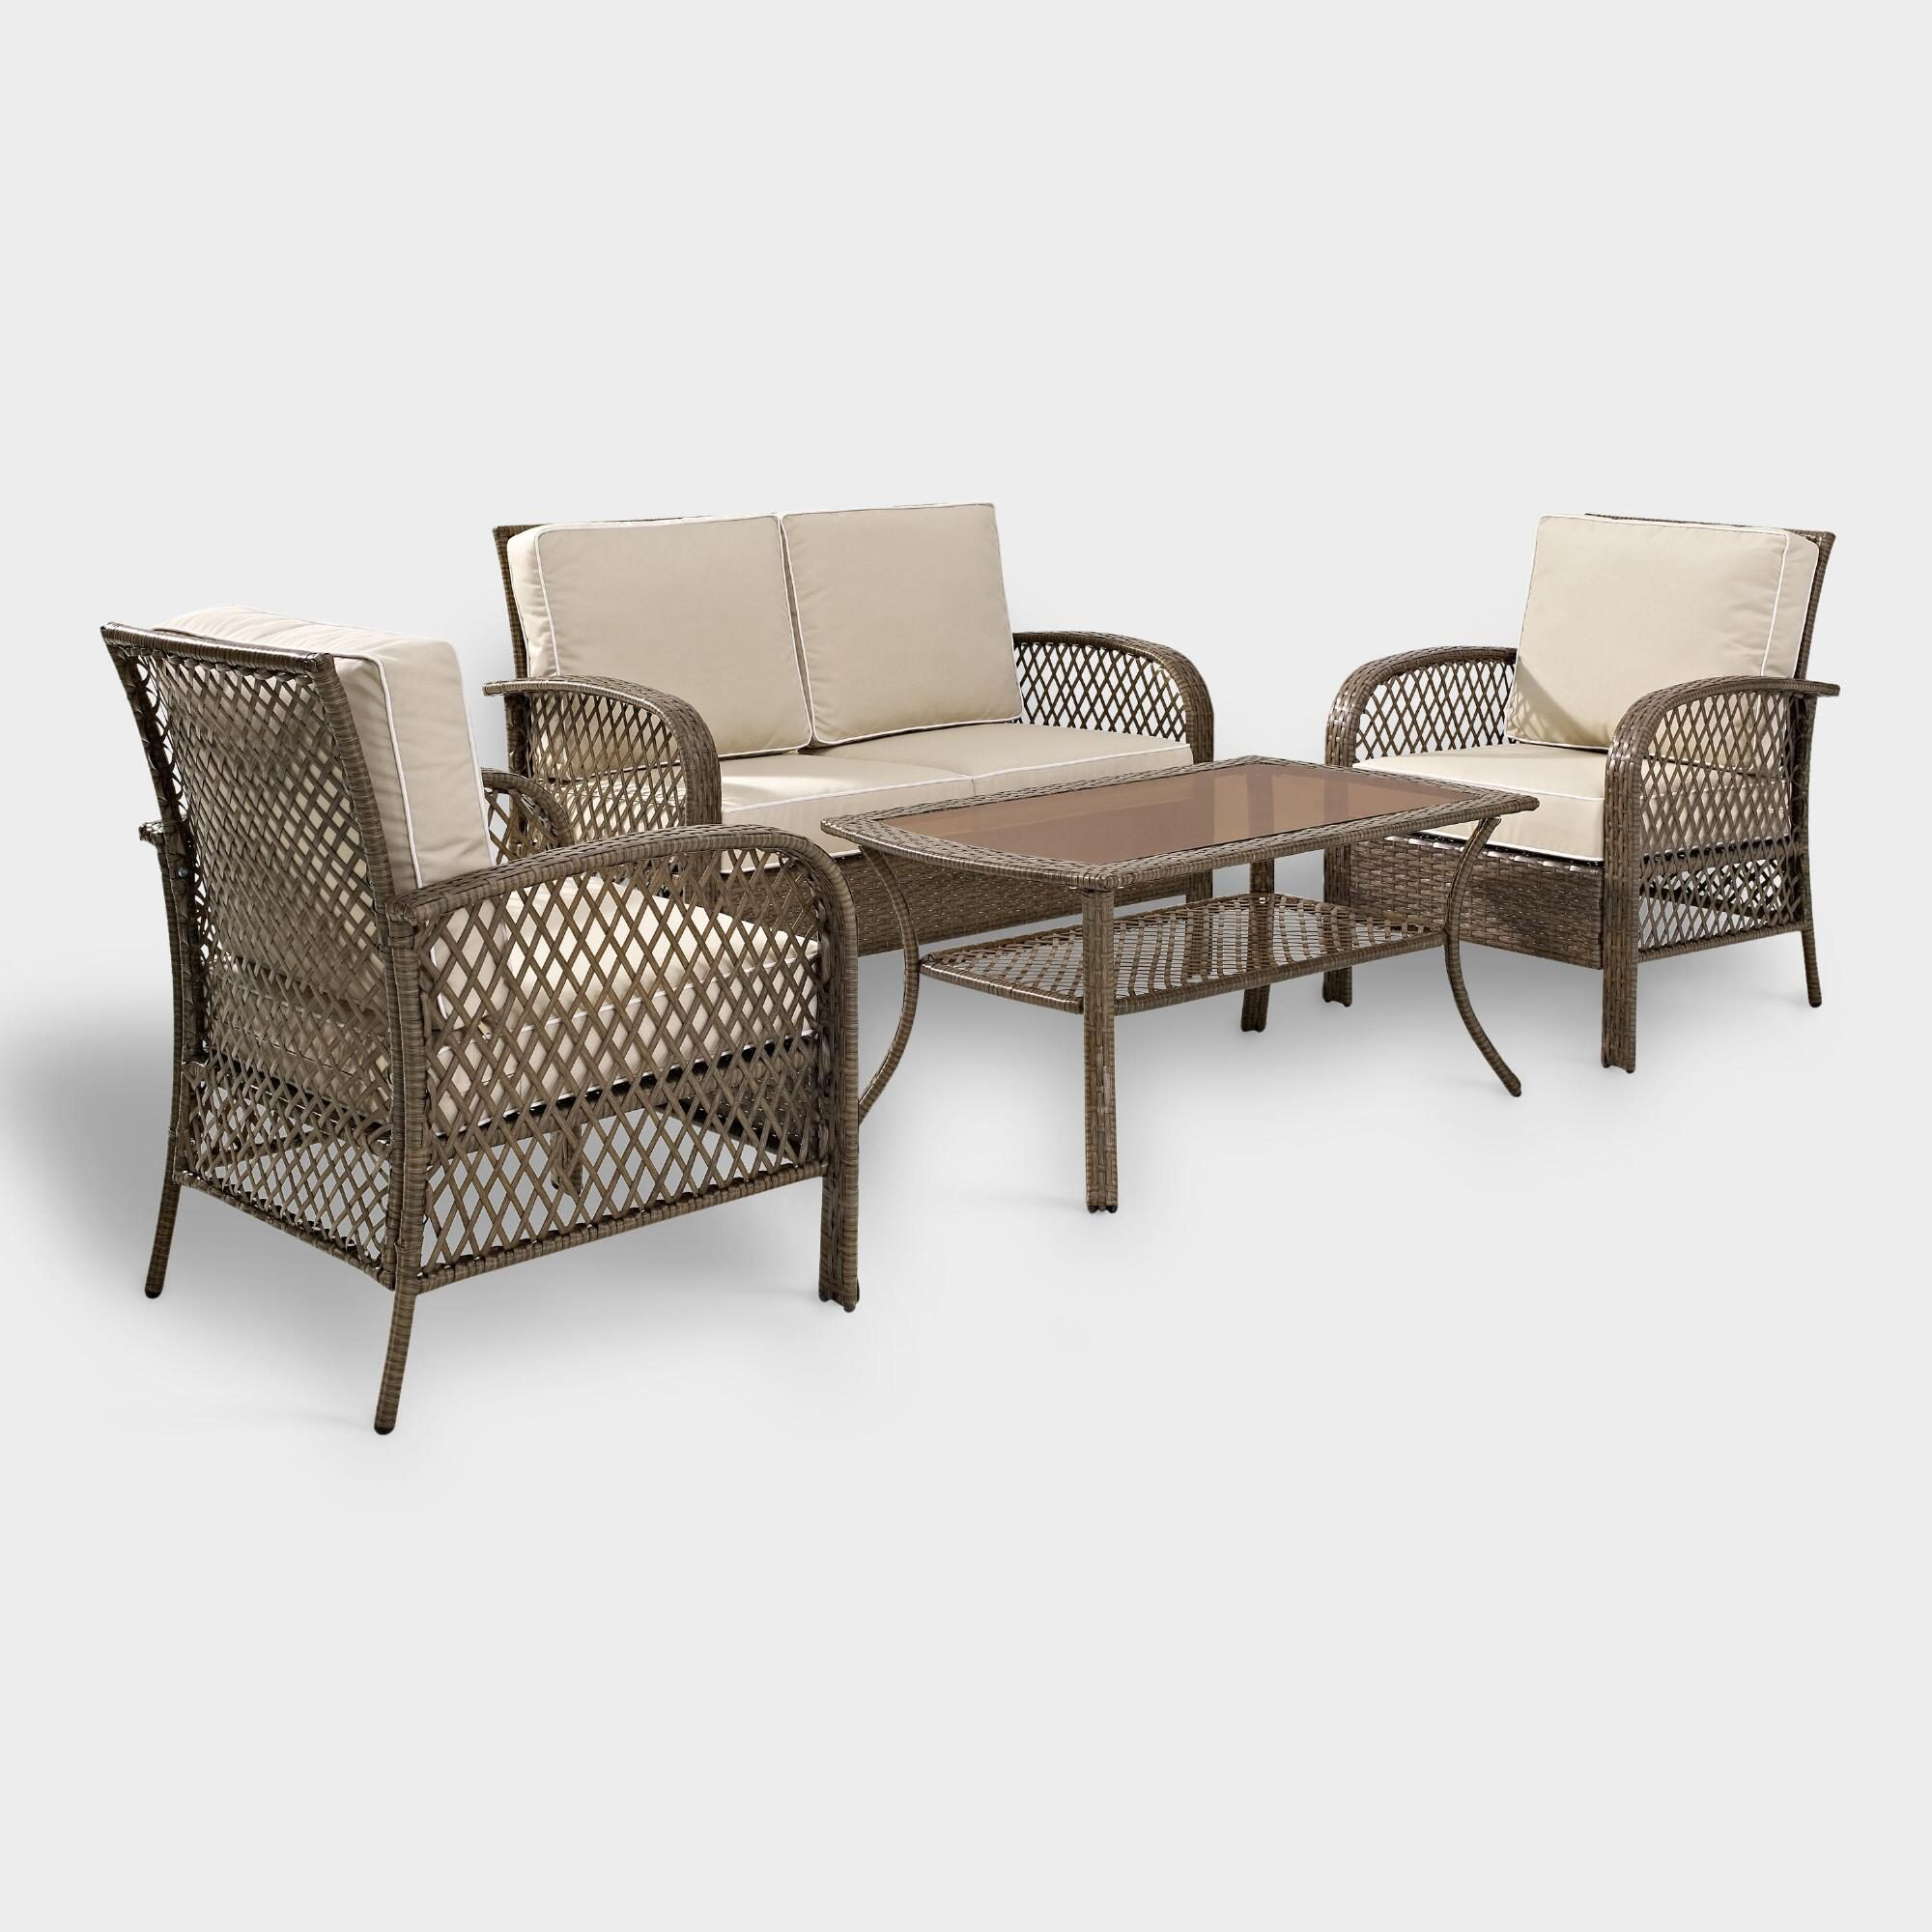 Driftwood All Weather 4 Piece Aviana Outdoor Patio Occasional Set by World Market